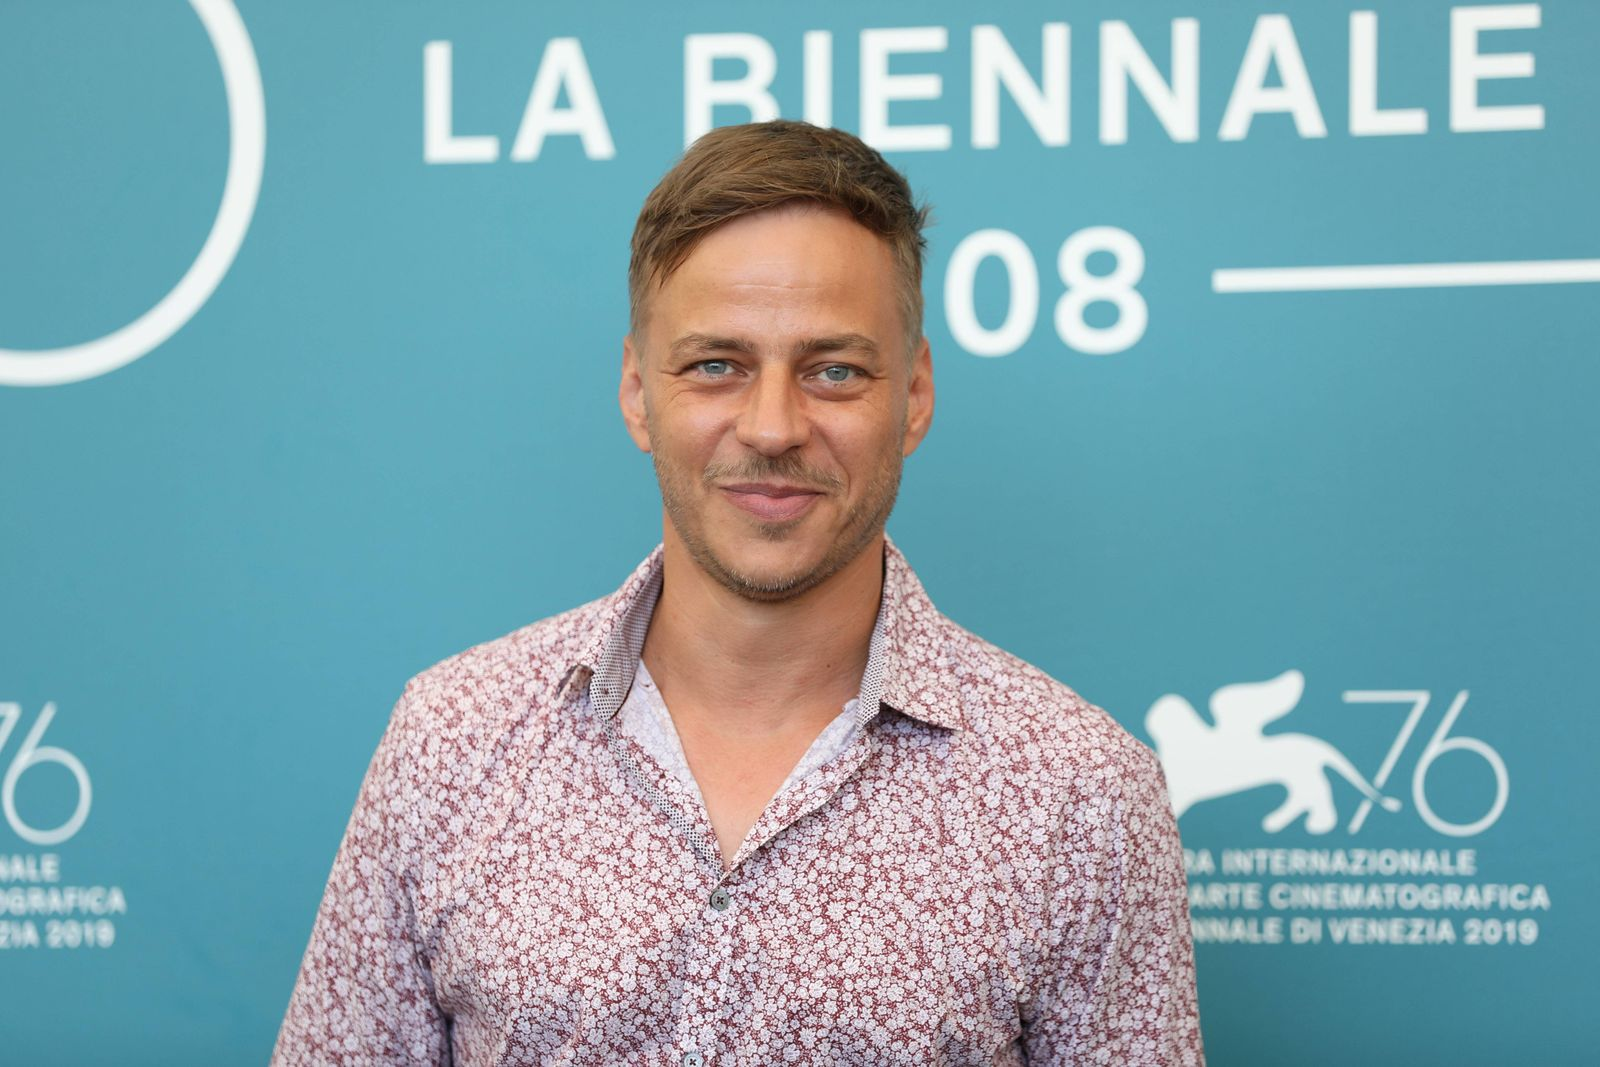 190905 VENICE Sept 5 2019 Actor Tom Wlaschiha attends a photocall for the film Saturday